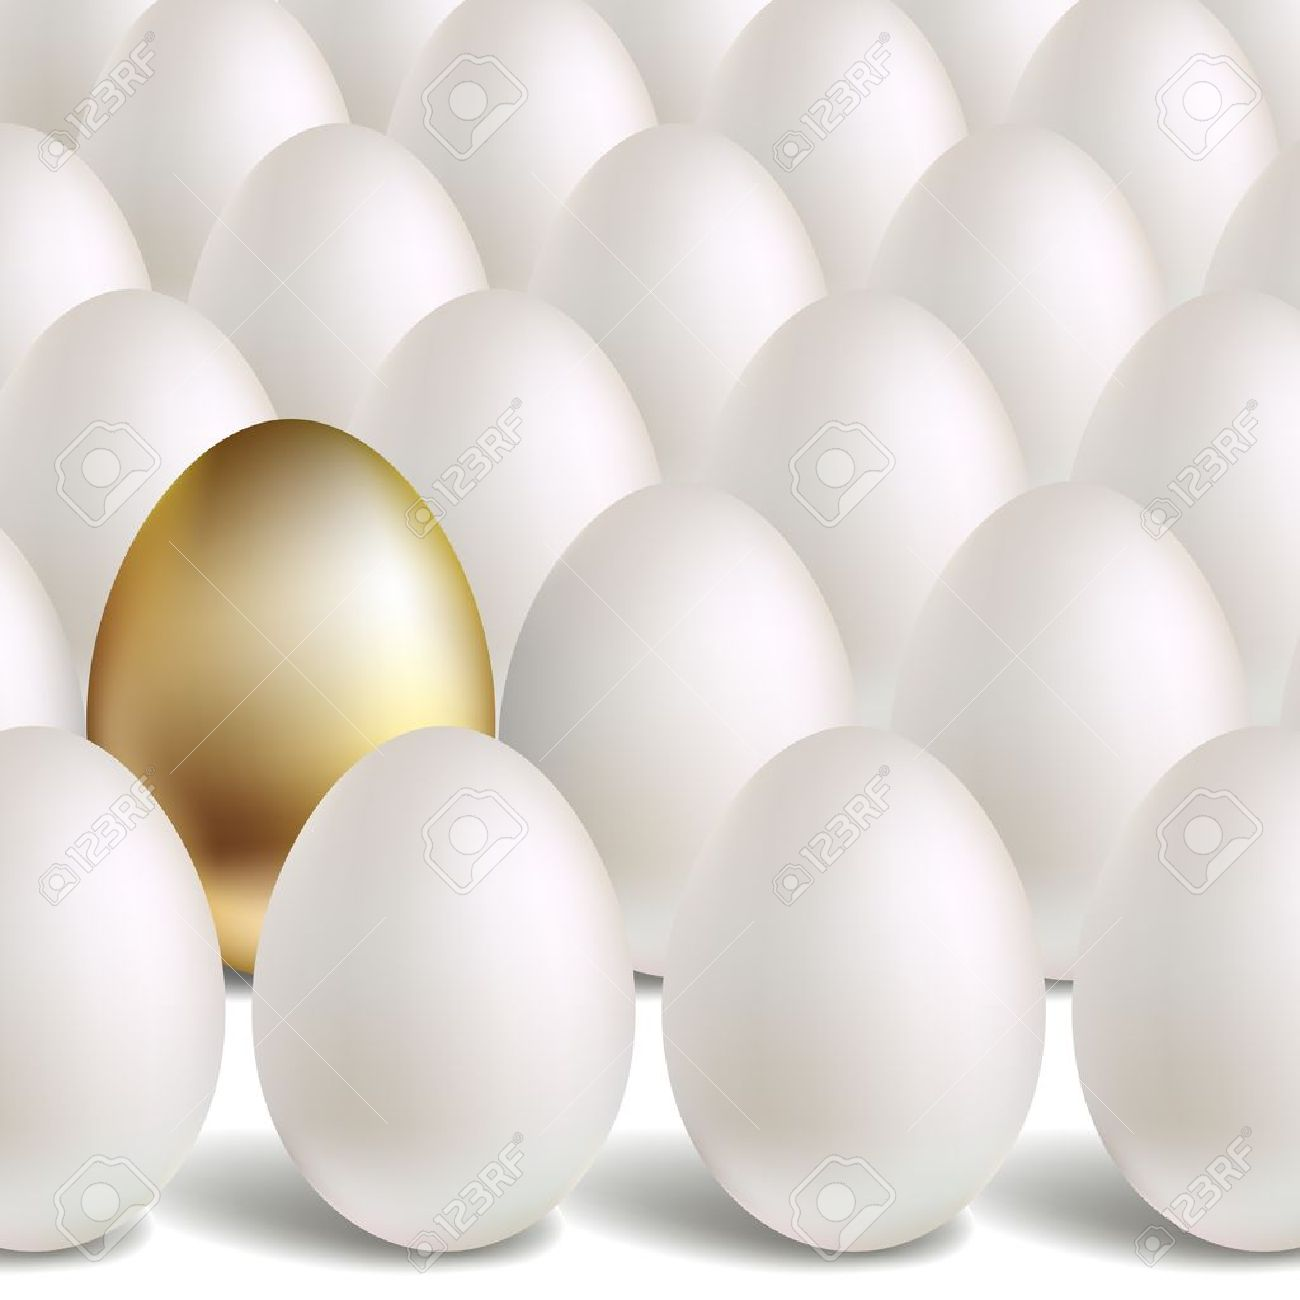 White And Unique Golden Eggs Stock Vector 14799969